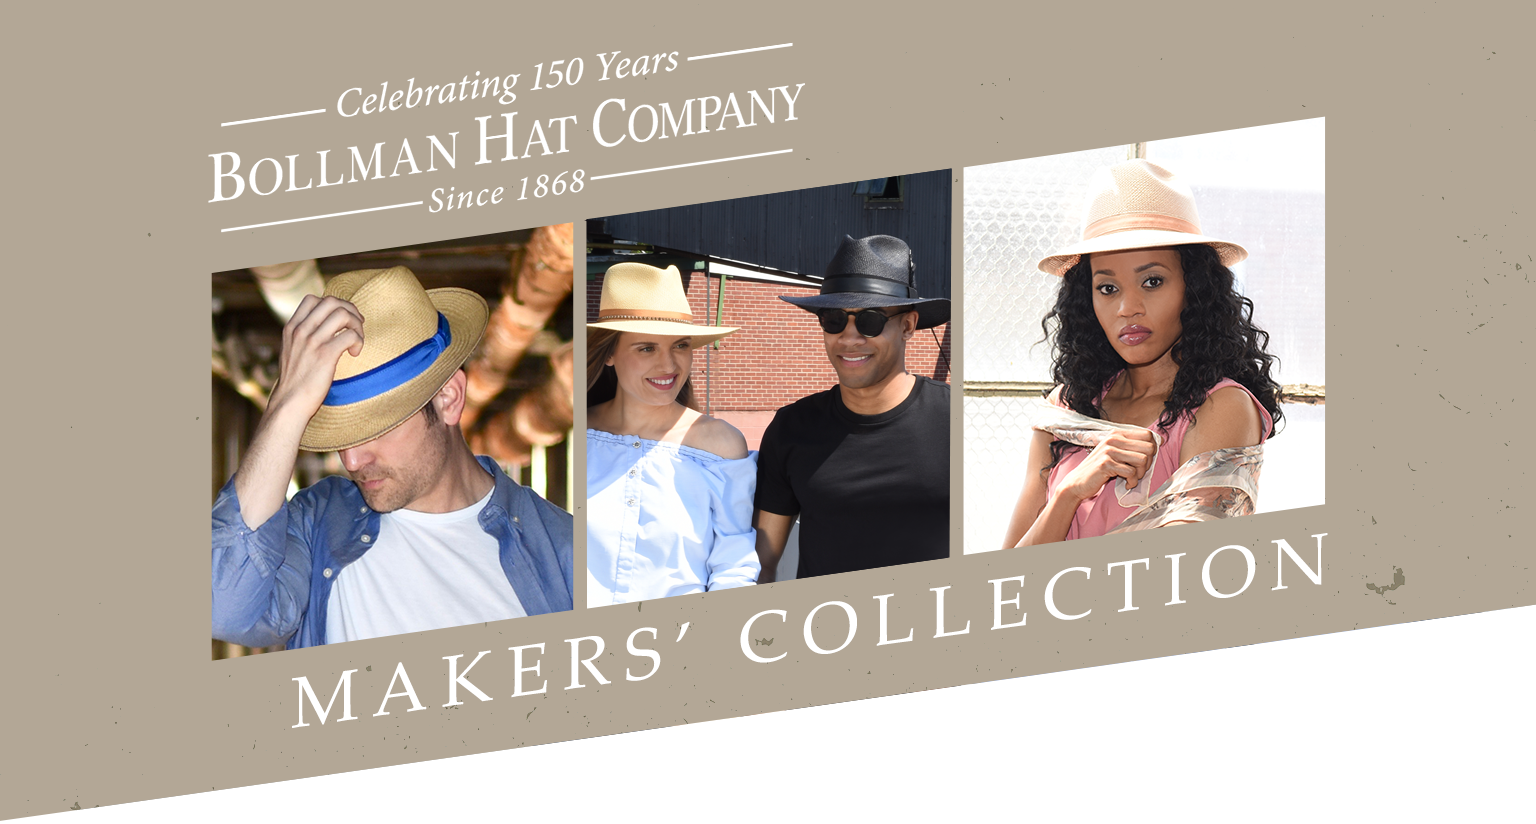 Bollman Hat Company Makers' Collection